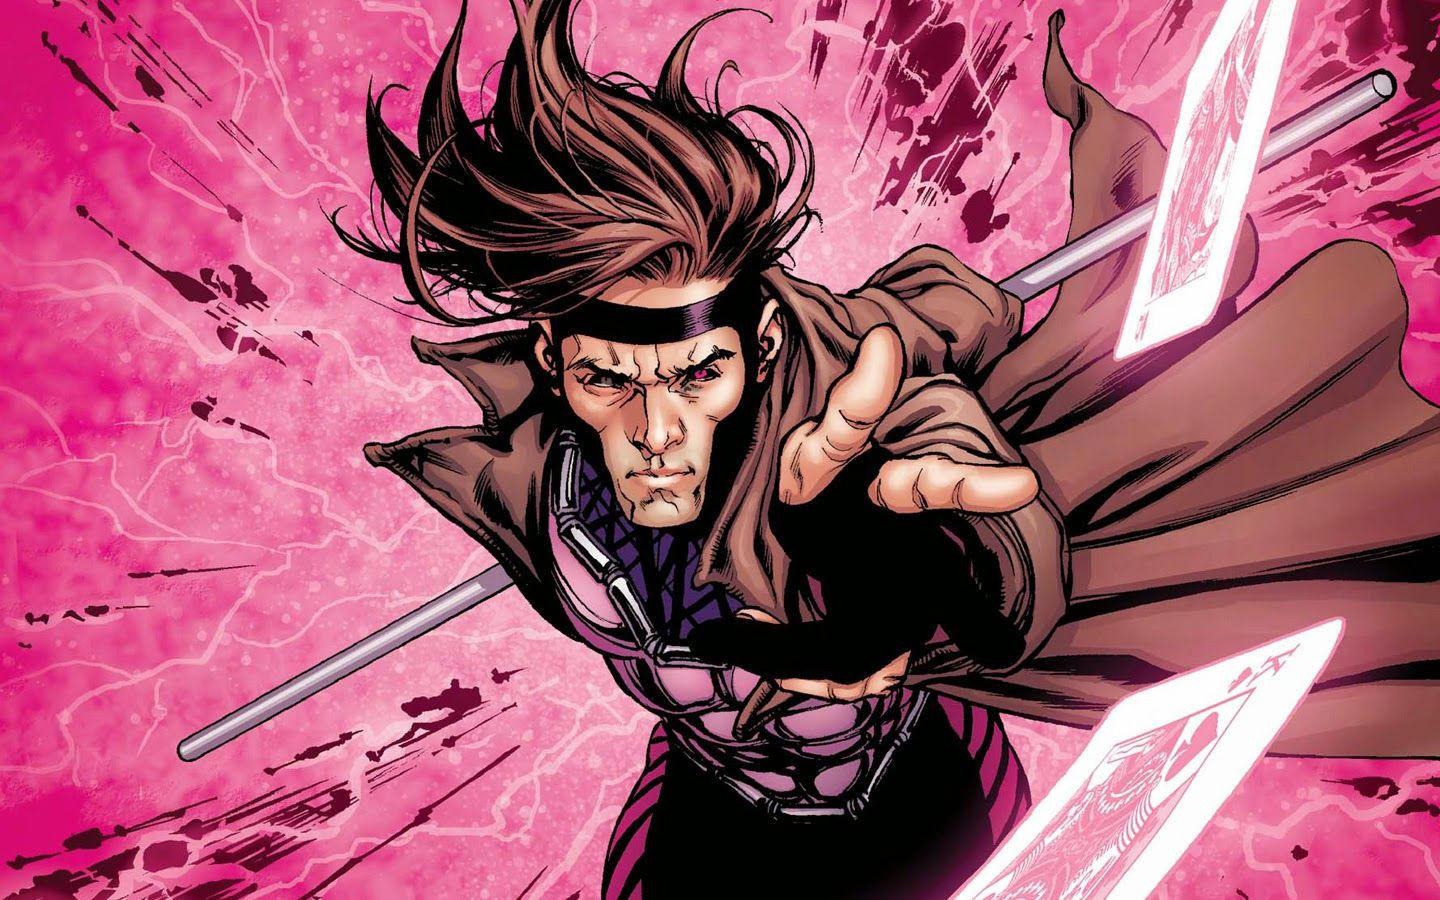 Everyone's Wild About Remy Lebeau, The X-Men's Gambit